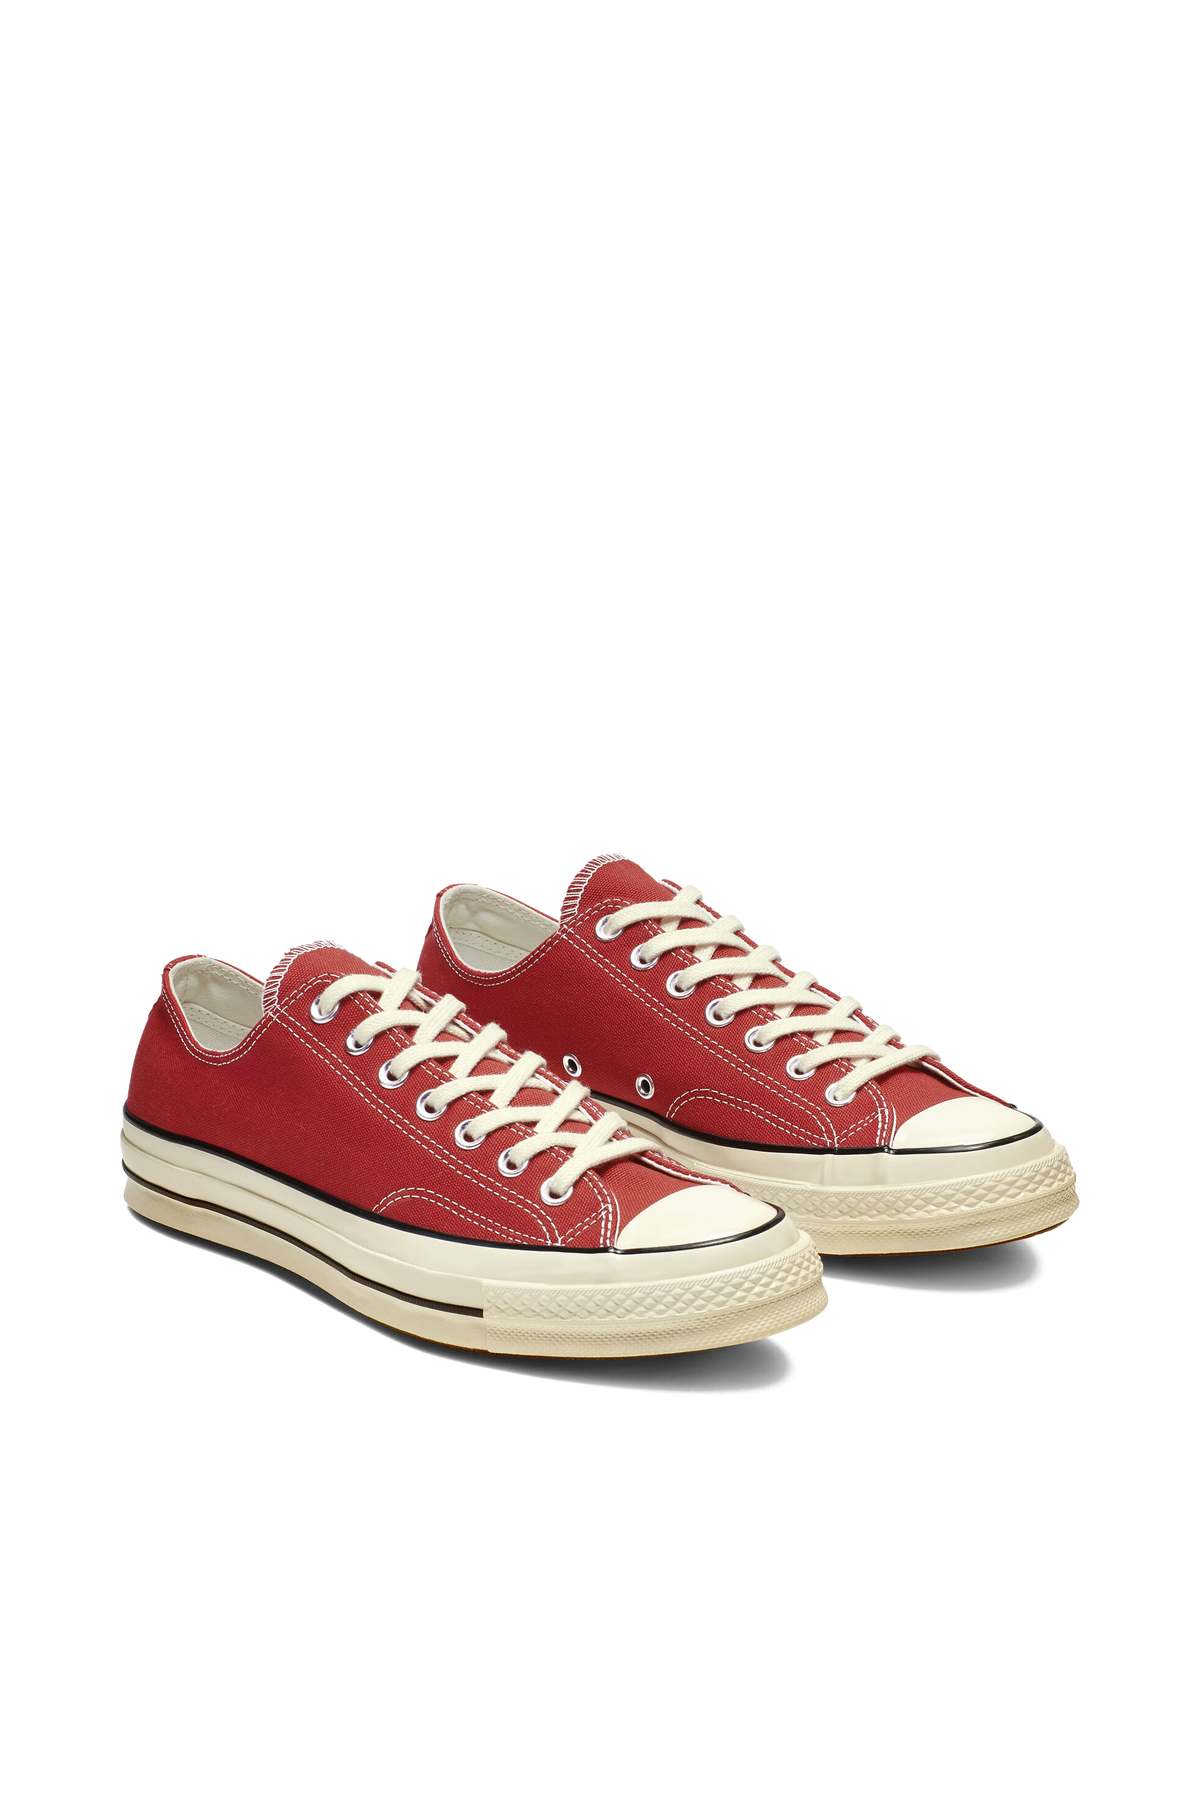 Chuck Taylor All Star 70 Canvas Low - Enamel Red